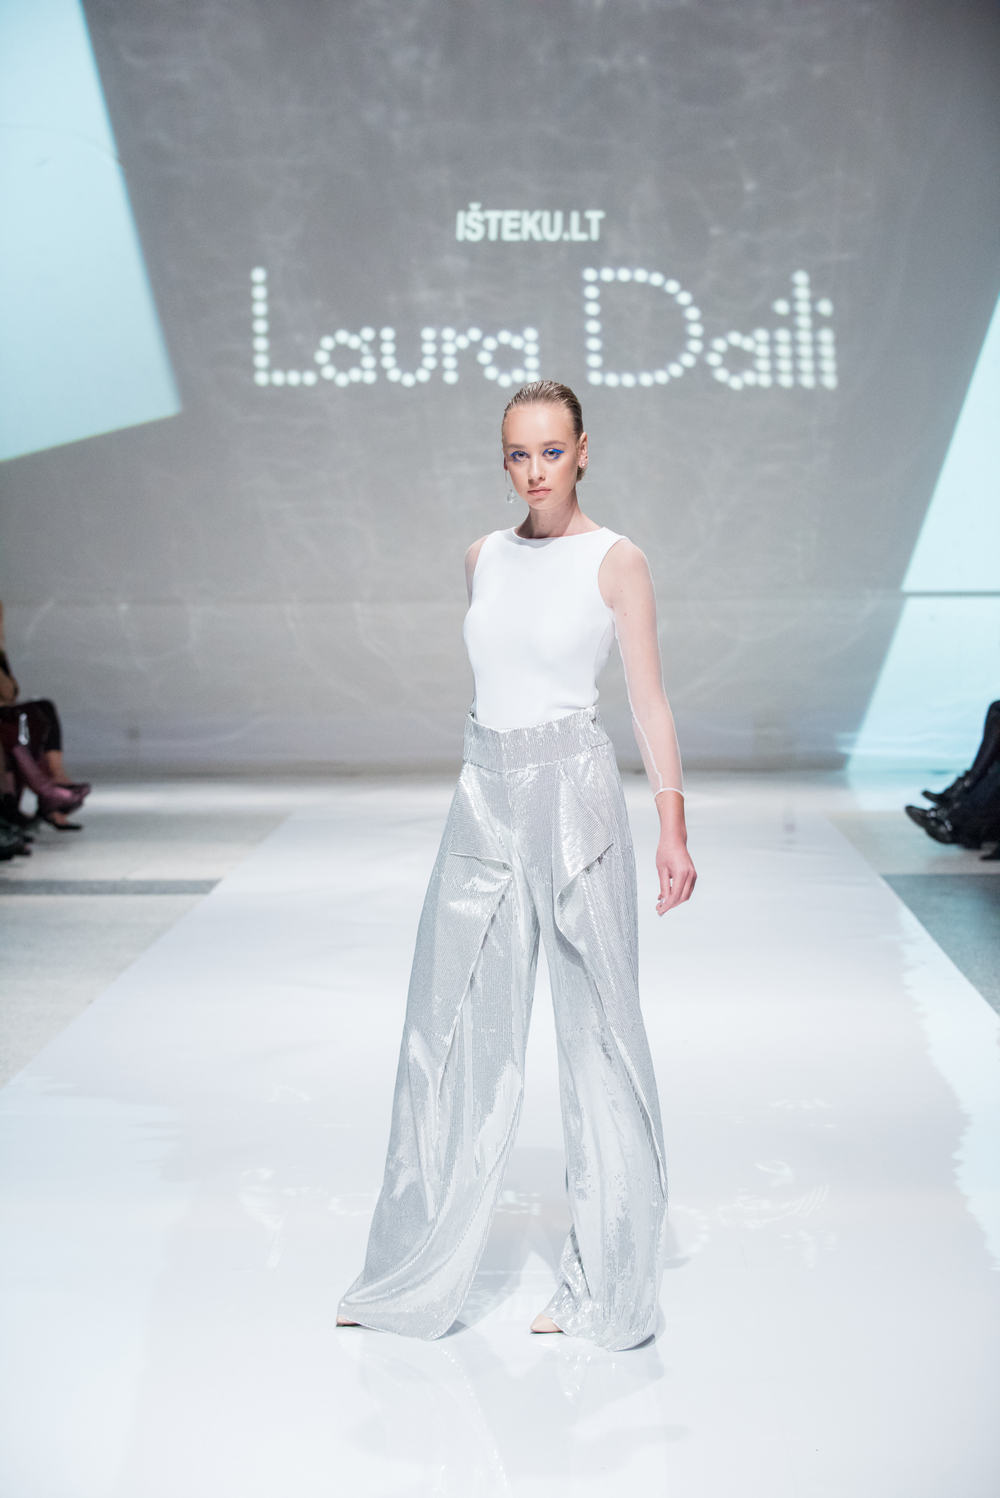 Laura Daili Bridal Collection 2017 Isteku lt (20)